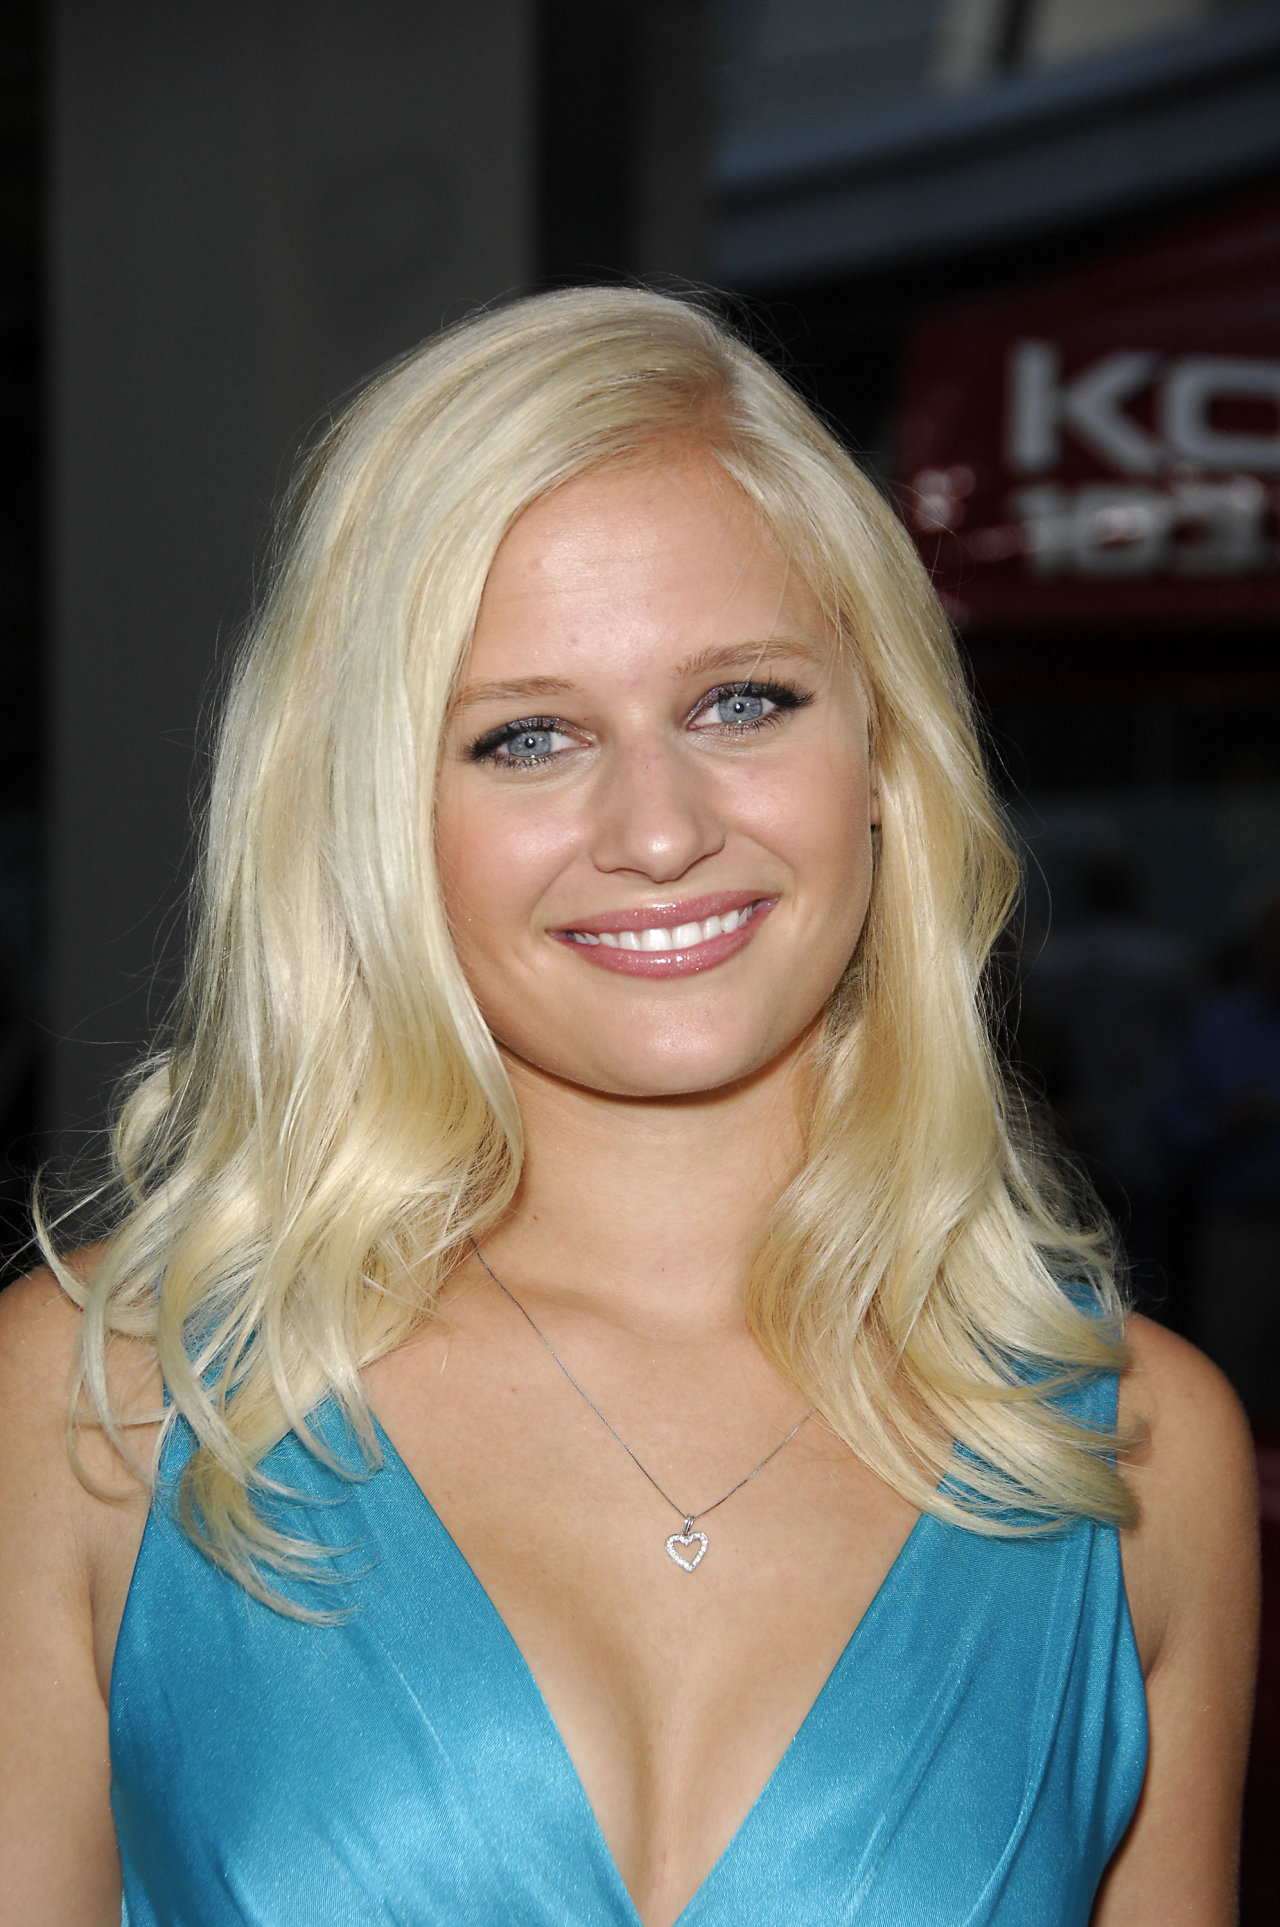 carly schroeder preycarly schroeder instagram, carly schroeder, carly schroeder imdb, carly schroeder boyfriend, carly schroeder movies, carly schroeder hot, carly schroeder net worth, carly schroeder twitter, carly schroeder facebook, carly schroeder 2014, carly schroeder mean creek, carly schroeder prey